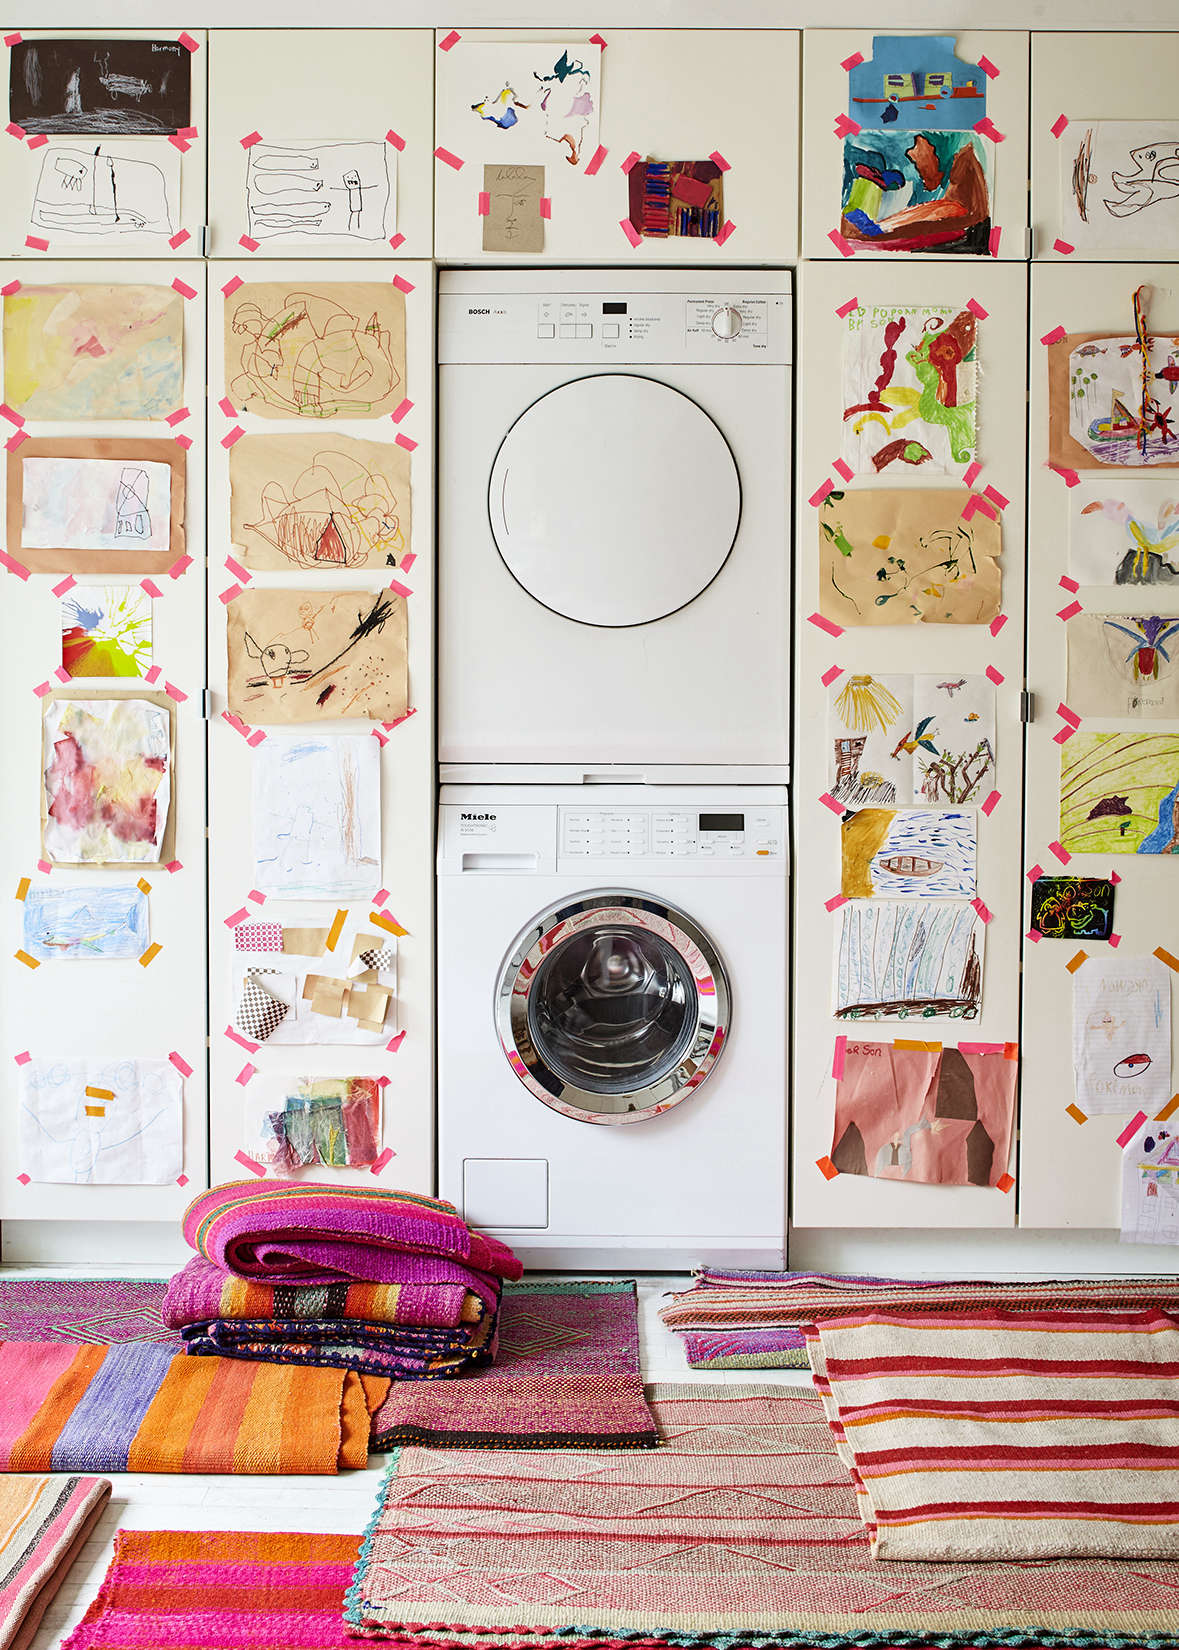 5 Quick Fixes: Clever Camouflage for the Washer/Dryer